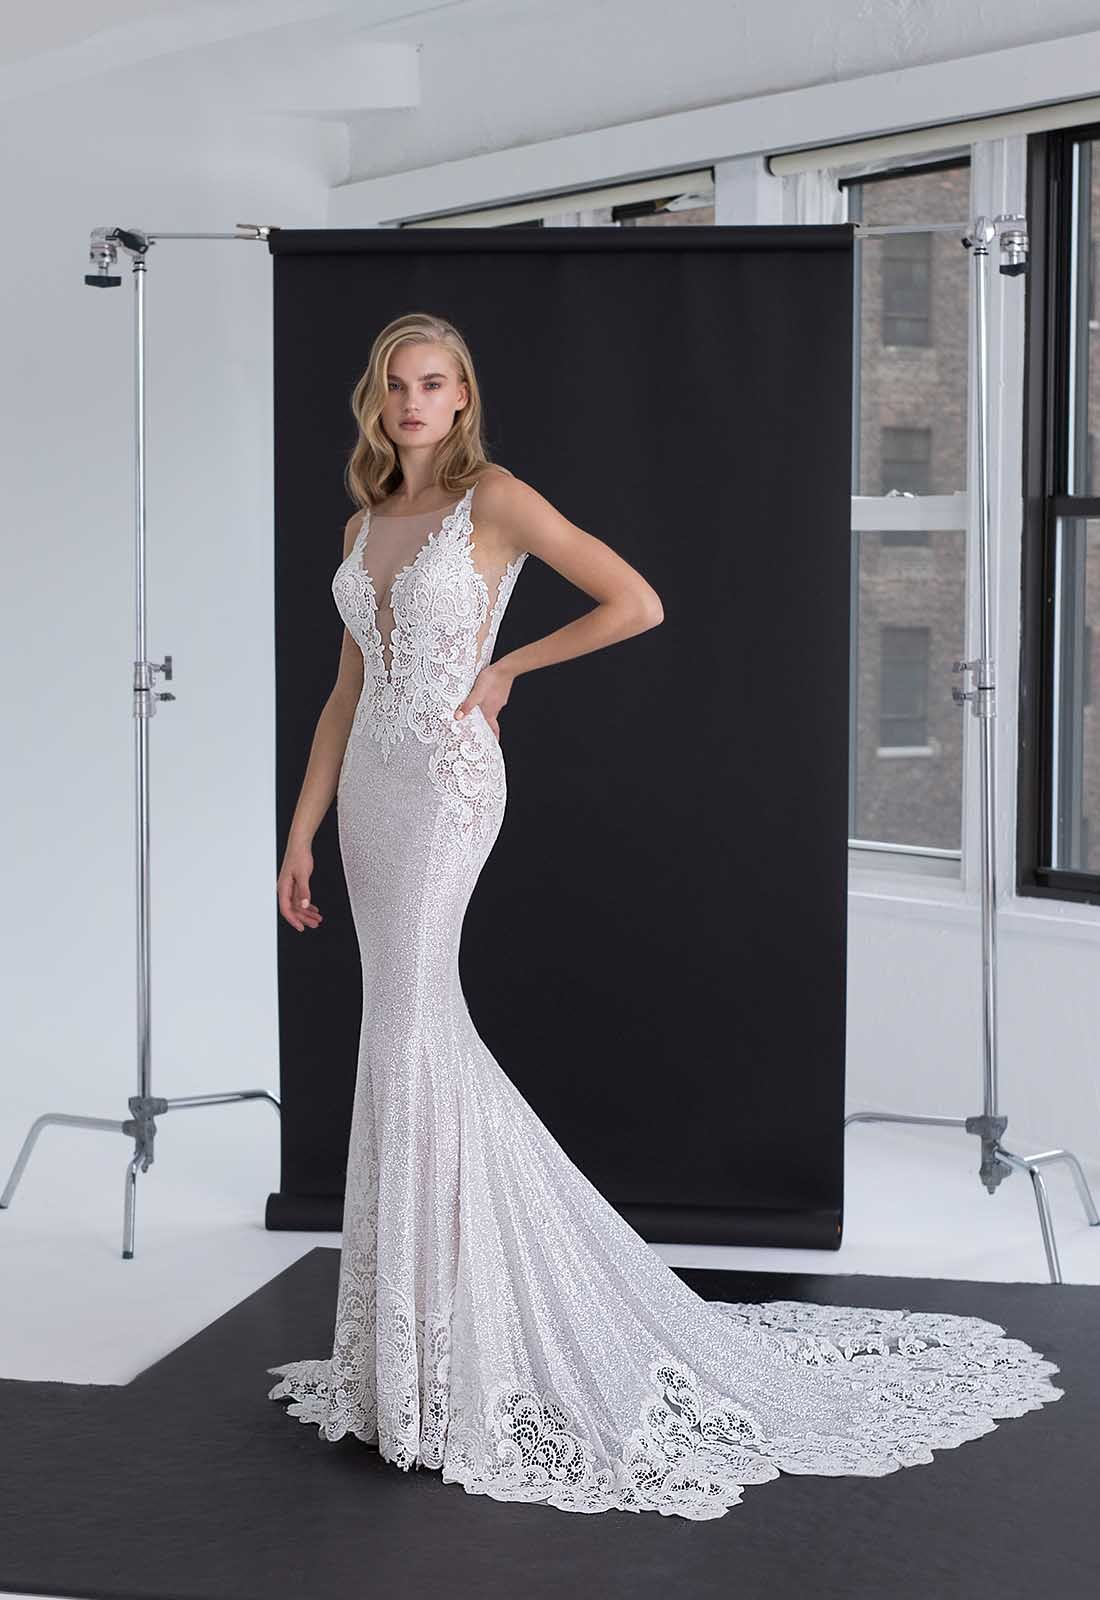 Wedding Dresses / Pnina Tornai 4729 WeddingWire.co.uk